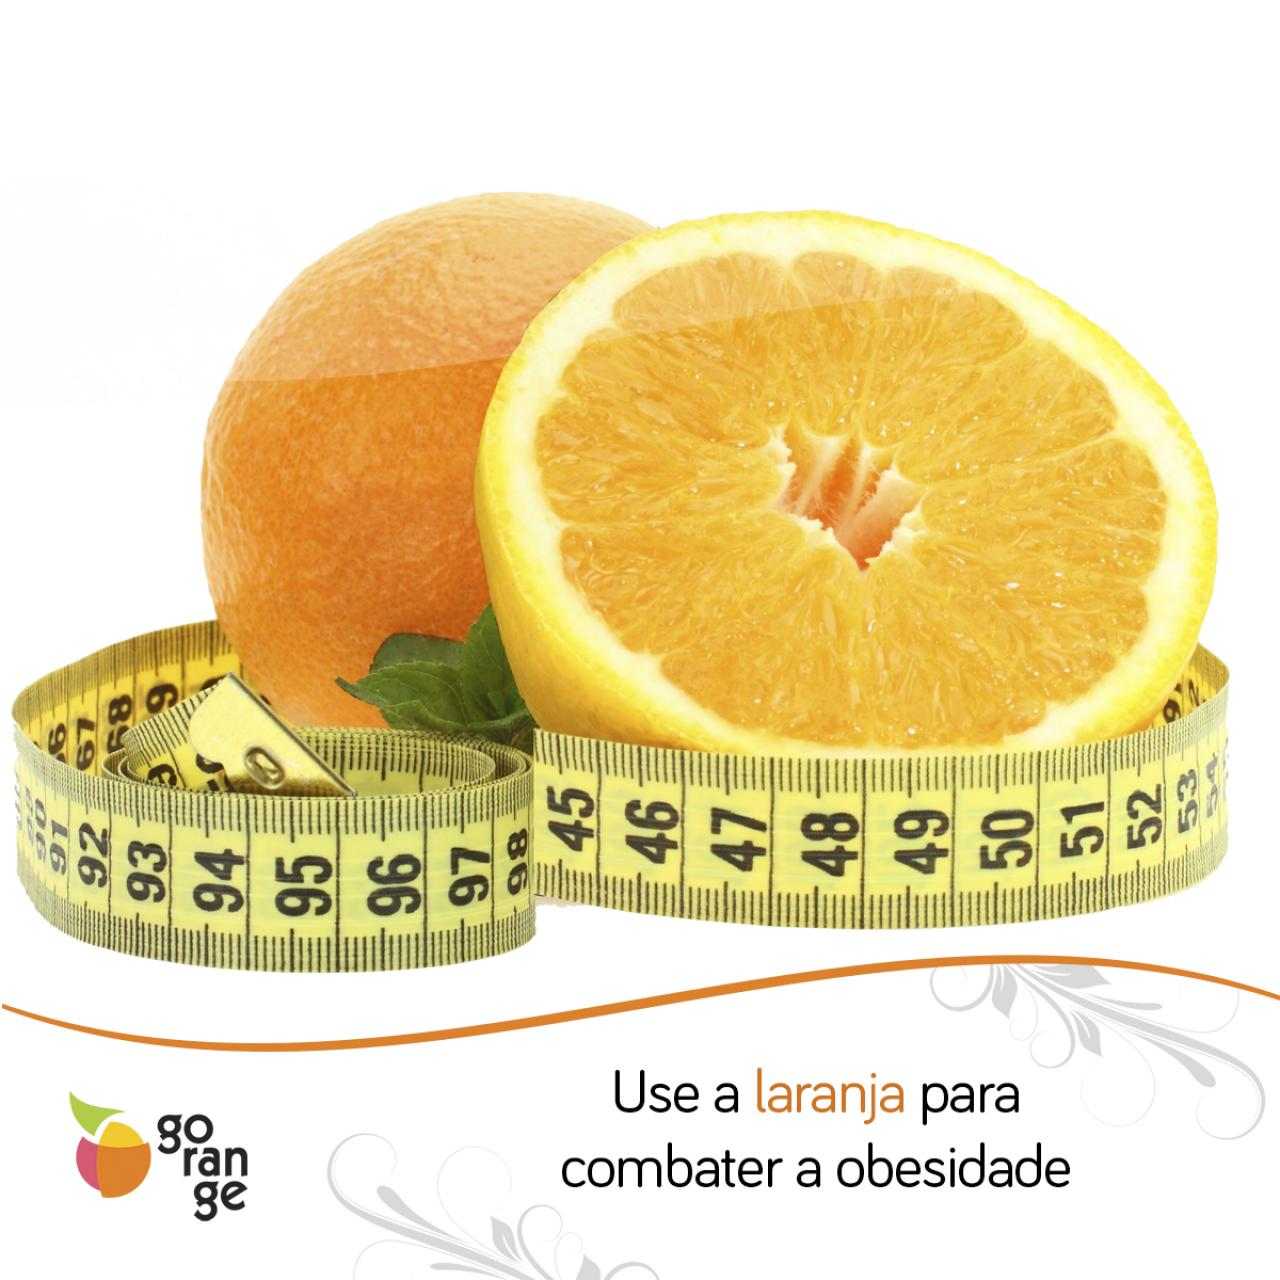 Combate a obesidade